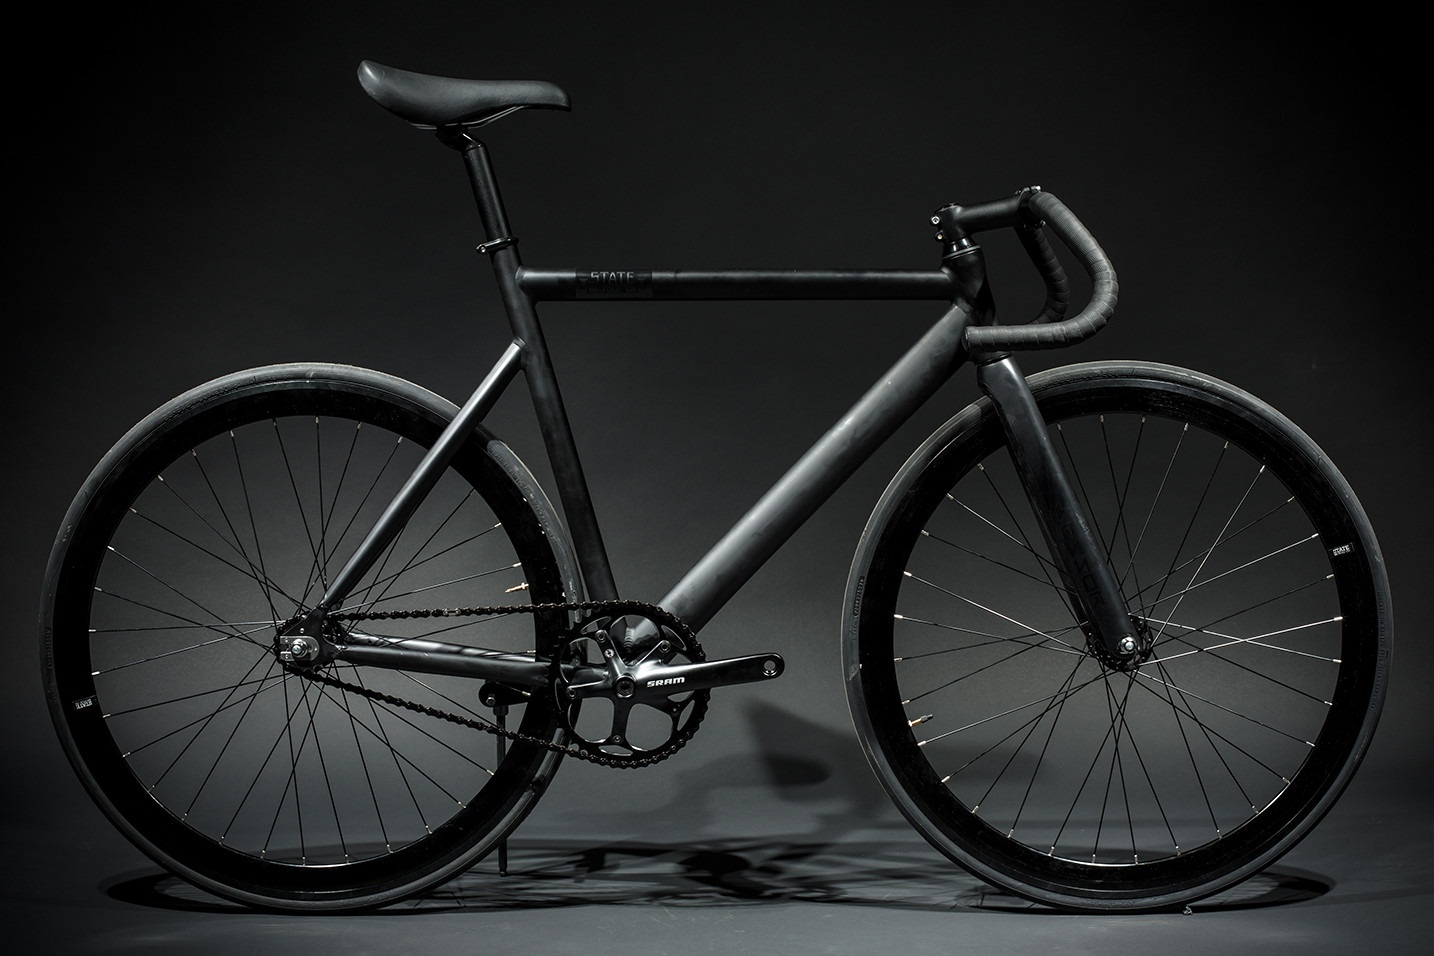 State Bicycle Black Label 6061 Aluminum Fixed Gear Bike Review